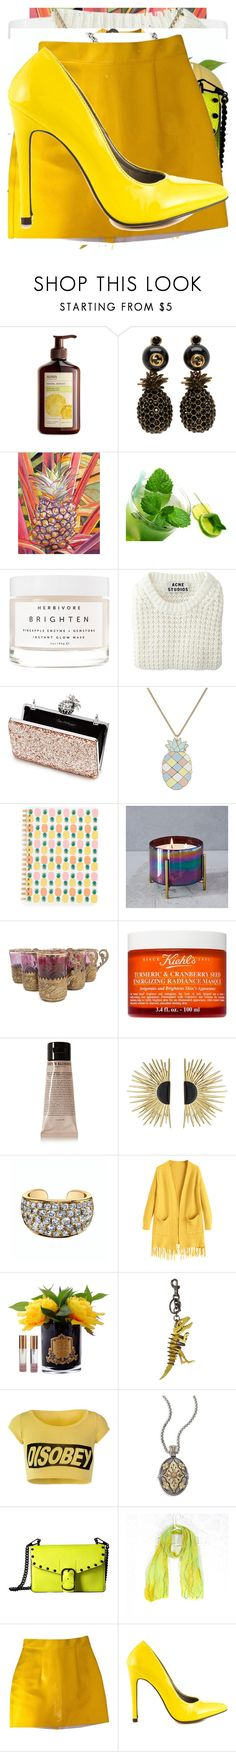 """Pineapple"" by knmaem ❤ liked on Polyvore featuring Ahava, Gucci, Herbivore, Acne Studios, Miss Selfridge, Paul & Joe, West Elm, Kiehl's, Grown Alchemist and Aurélie Bidermann"